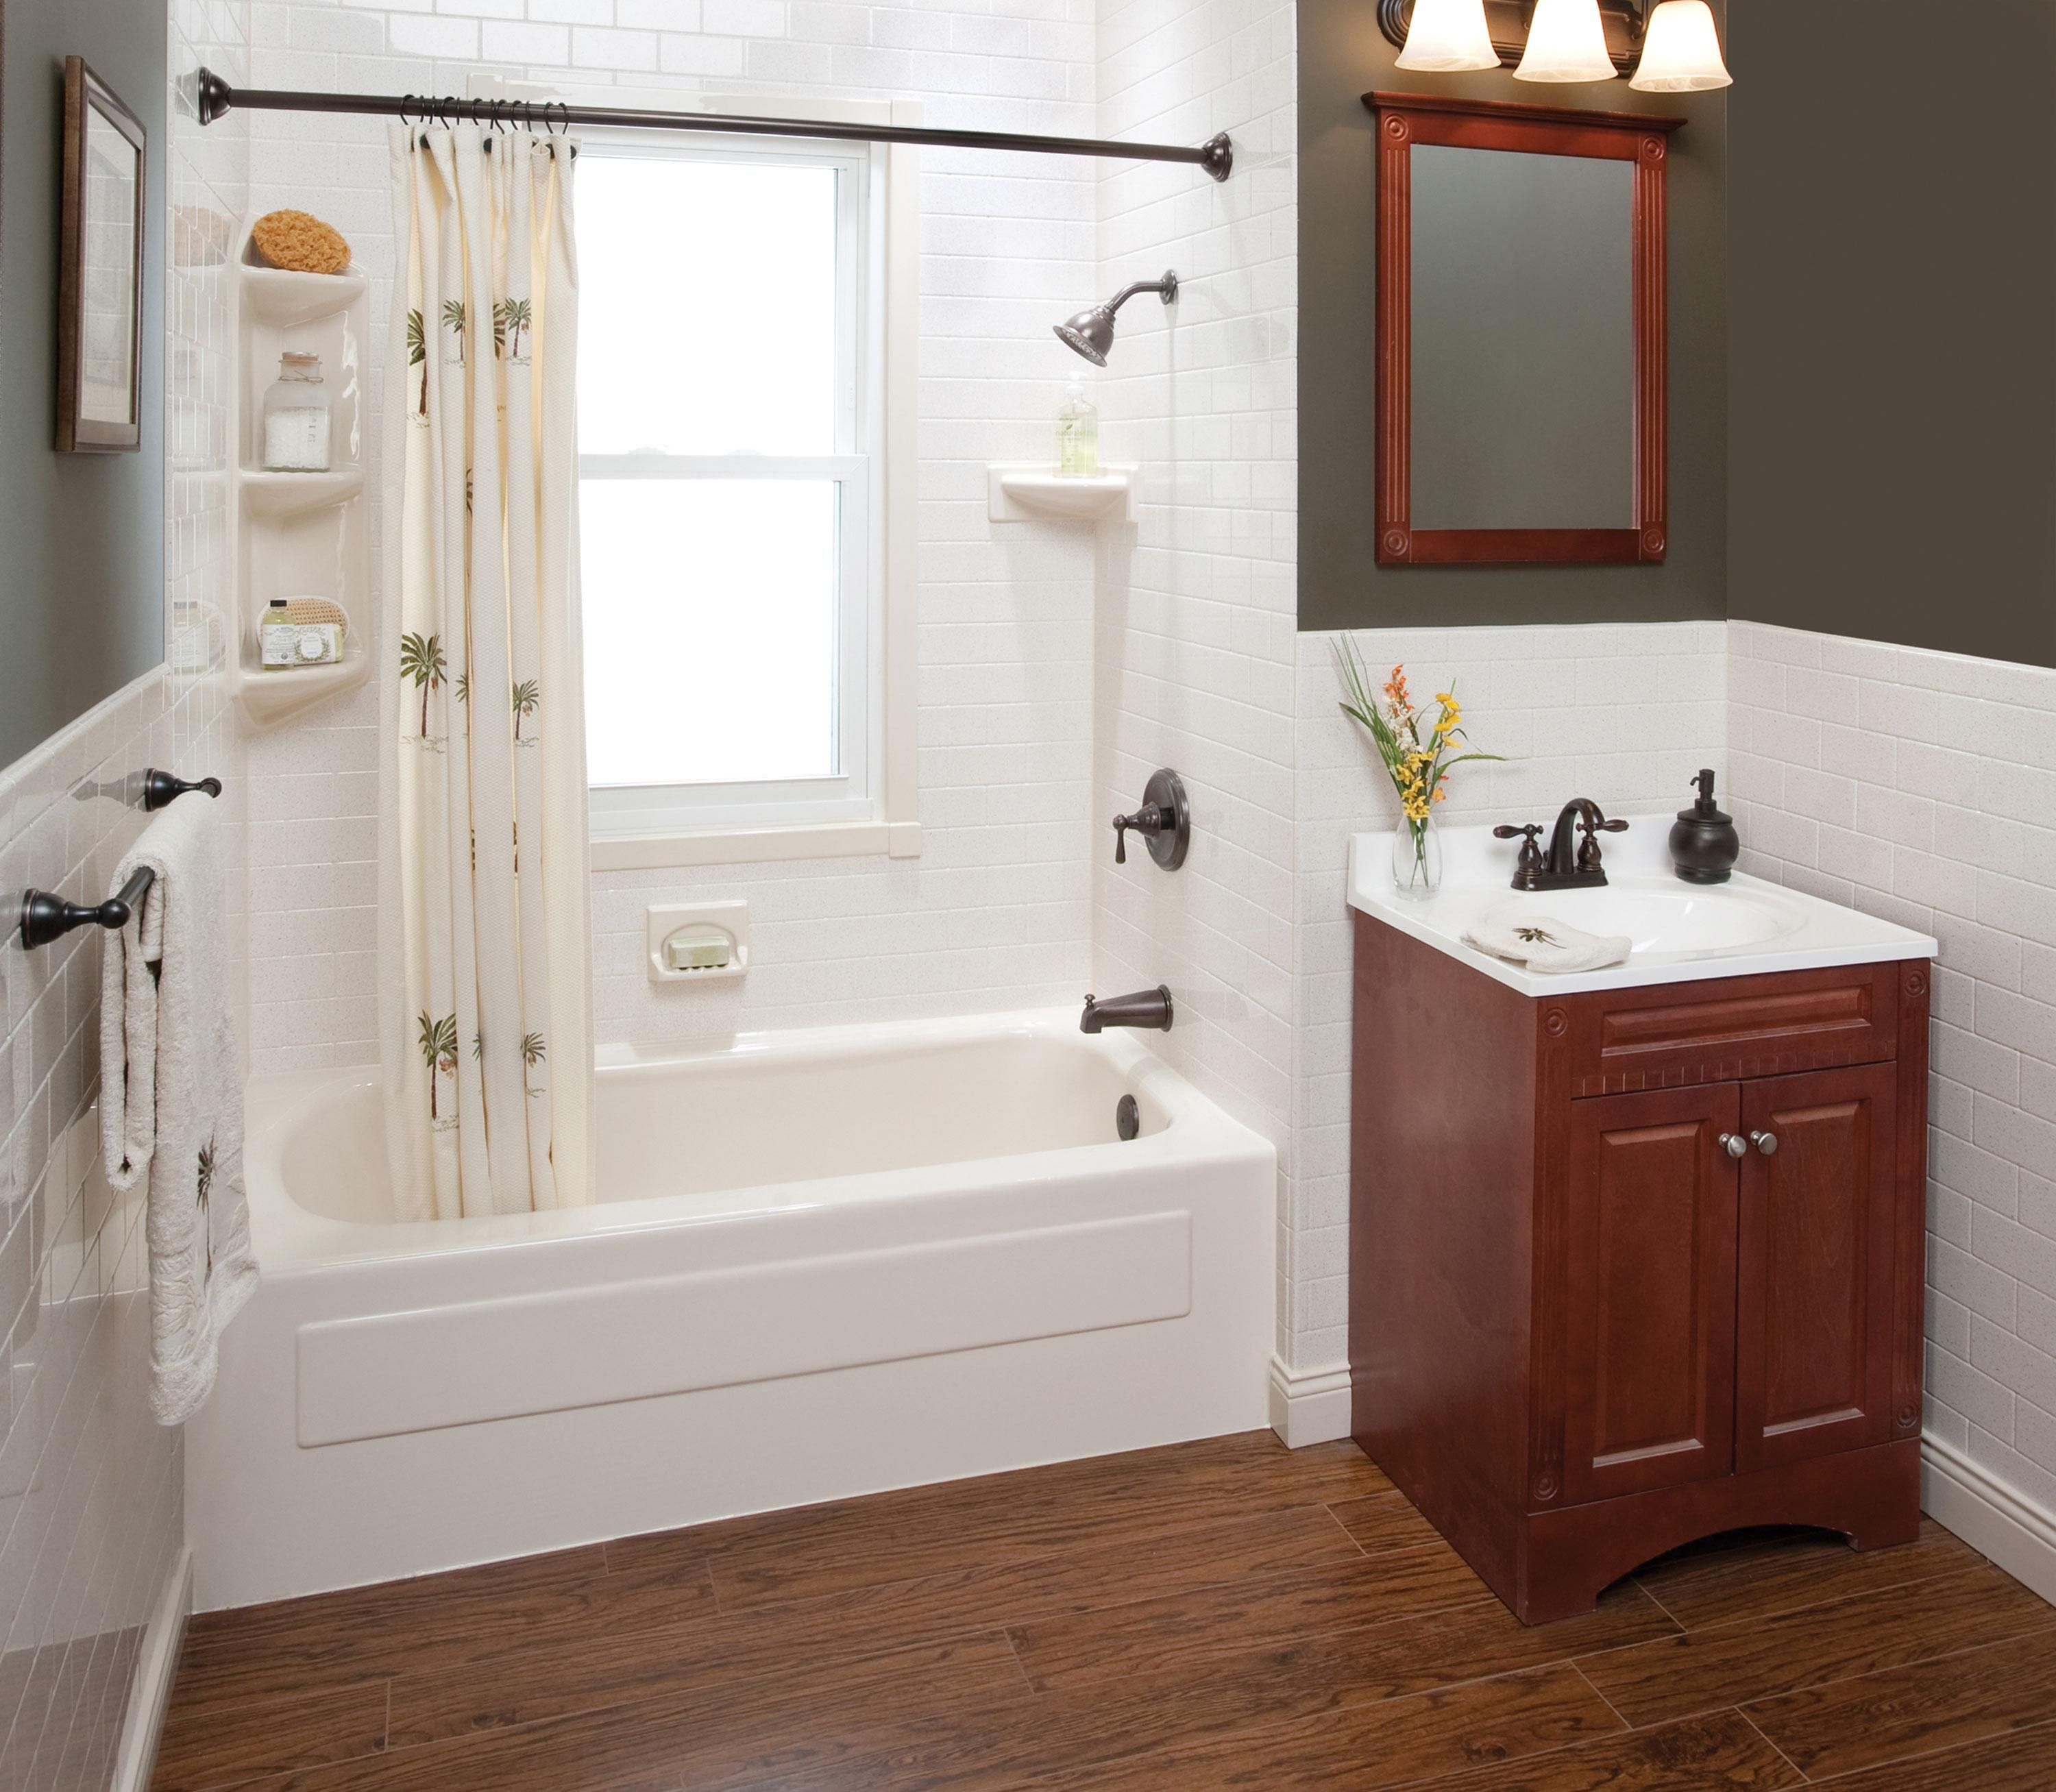 Remodel Bathroom Price bathroom remodel montgomery montgomery, al ~ descargas-mundiales